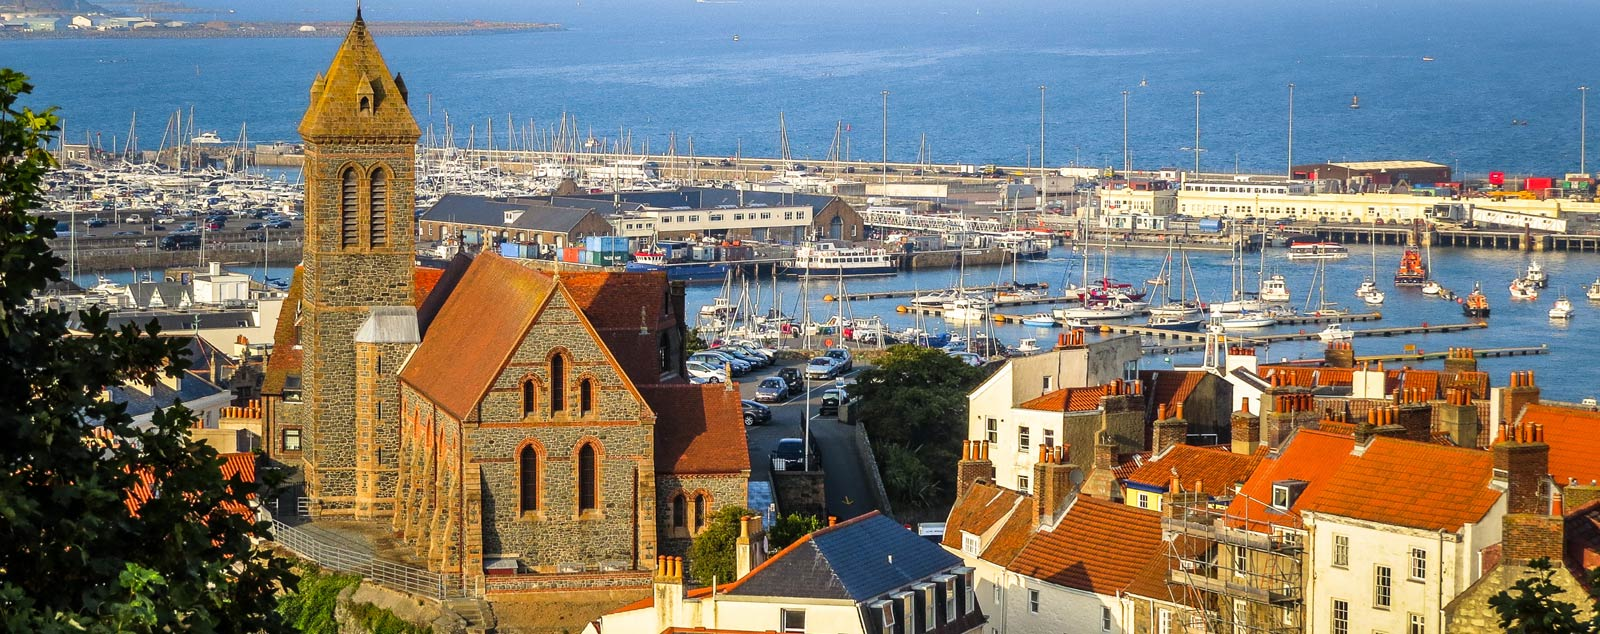 St Peter's Port harbour. A church sits at the top of the hill with houses leading down to the port filled with sailing ships